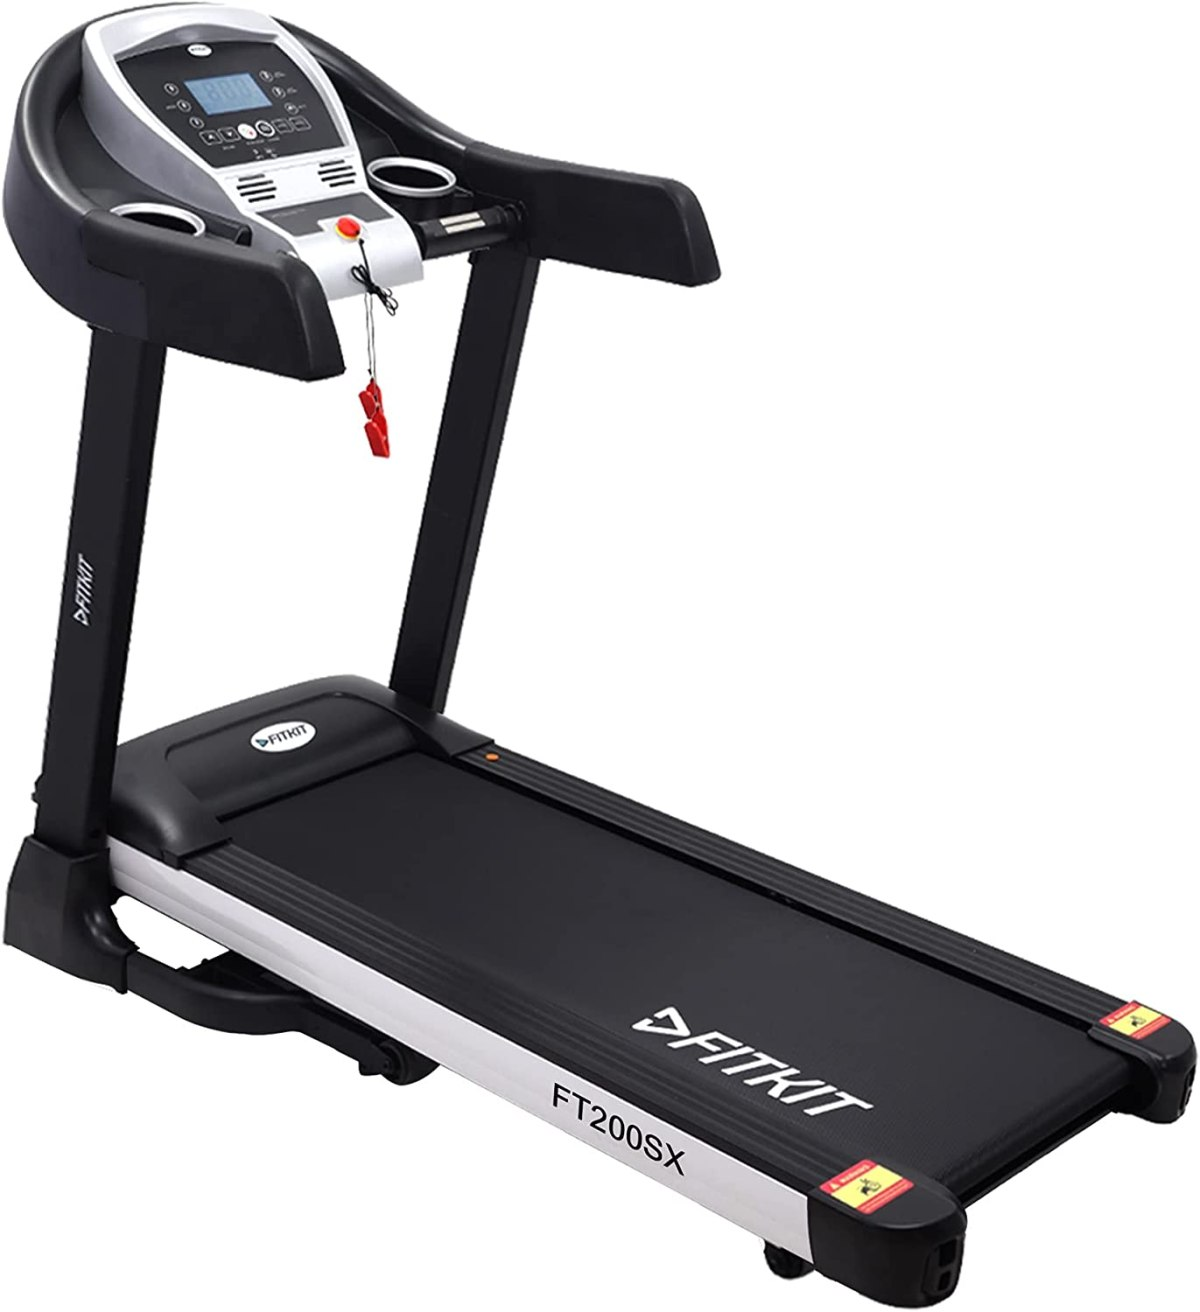 Buy Fitkit FT200SX 2.25HP (4.5HP Peak) DC-Motorised Treadmill ( Max  Speed:14km/hr, Max Weight: 110 Kg ) With Free home installation and Free  Diet & Fitness Plan Online at Low Prices in India -